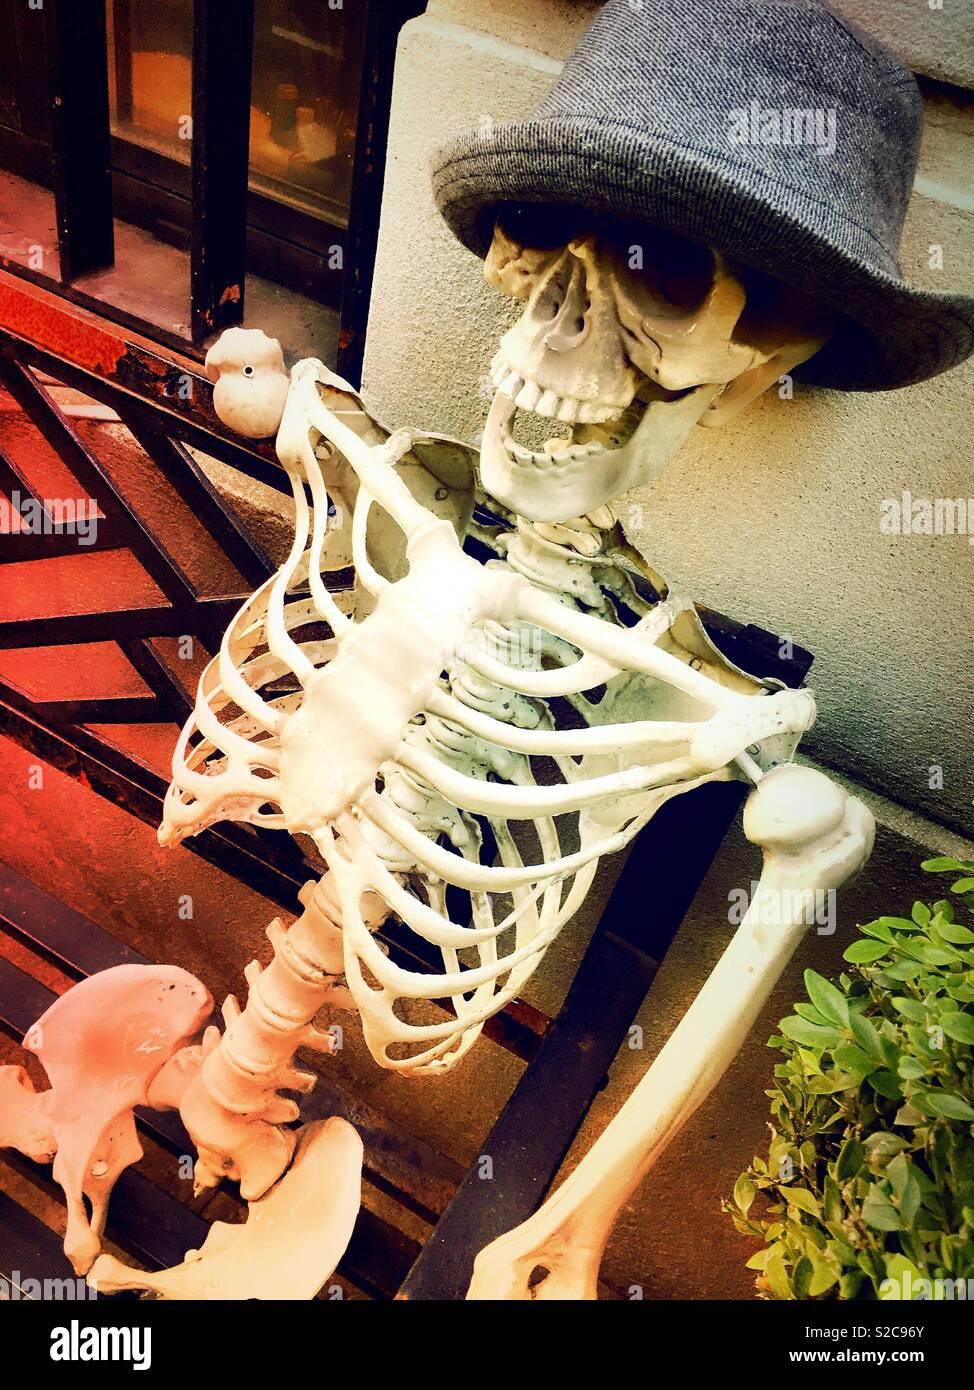 9b6b23ce1fab2 Skeleton Wearing Hat Stock Photos   Skeleton Wearing Hat Stock ...